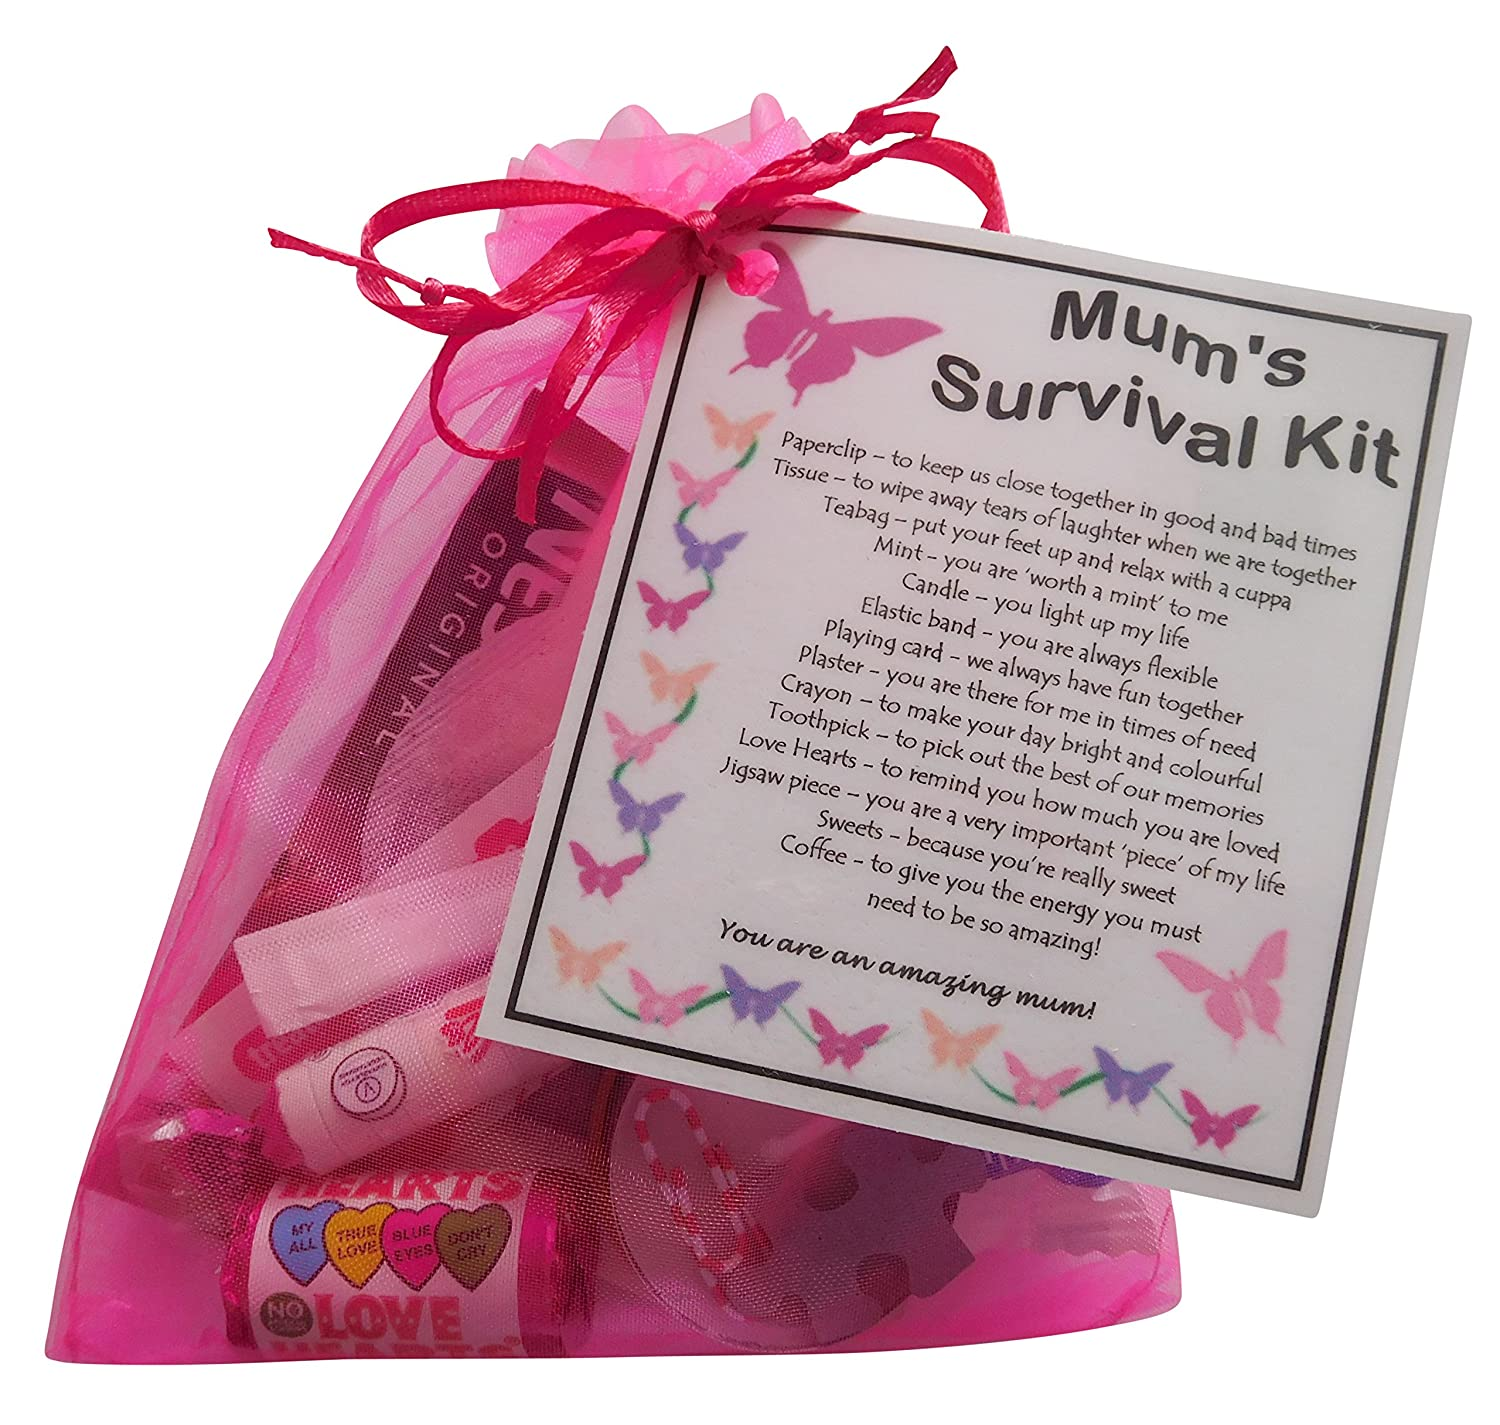 Good Christmas Presents For Mum Part - 27: Mumu0027s Survival Kit Gift (Great Present For Birthday, Christmas, Motheru0027s  Day Or Just Because...) - Mum Gift, Gift For Mum Gifts, Mother Gift For  Mothers ...